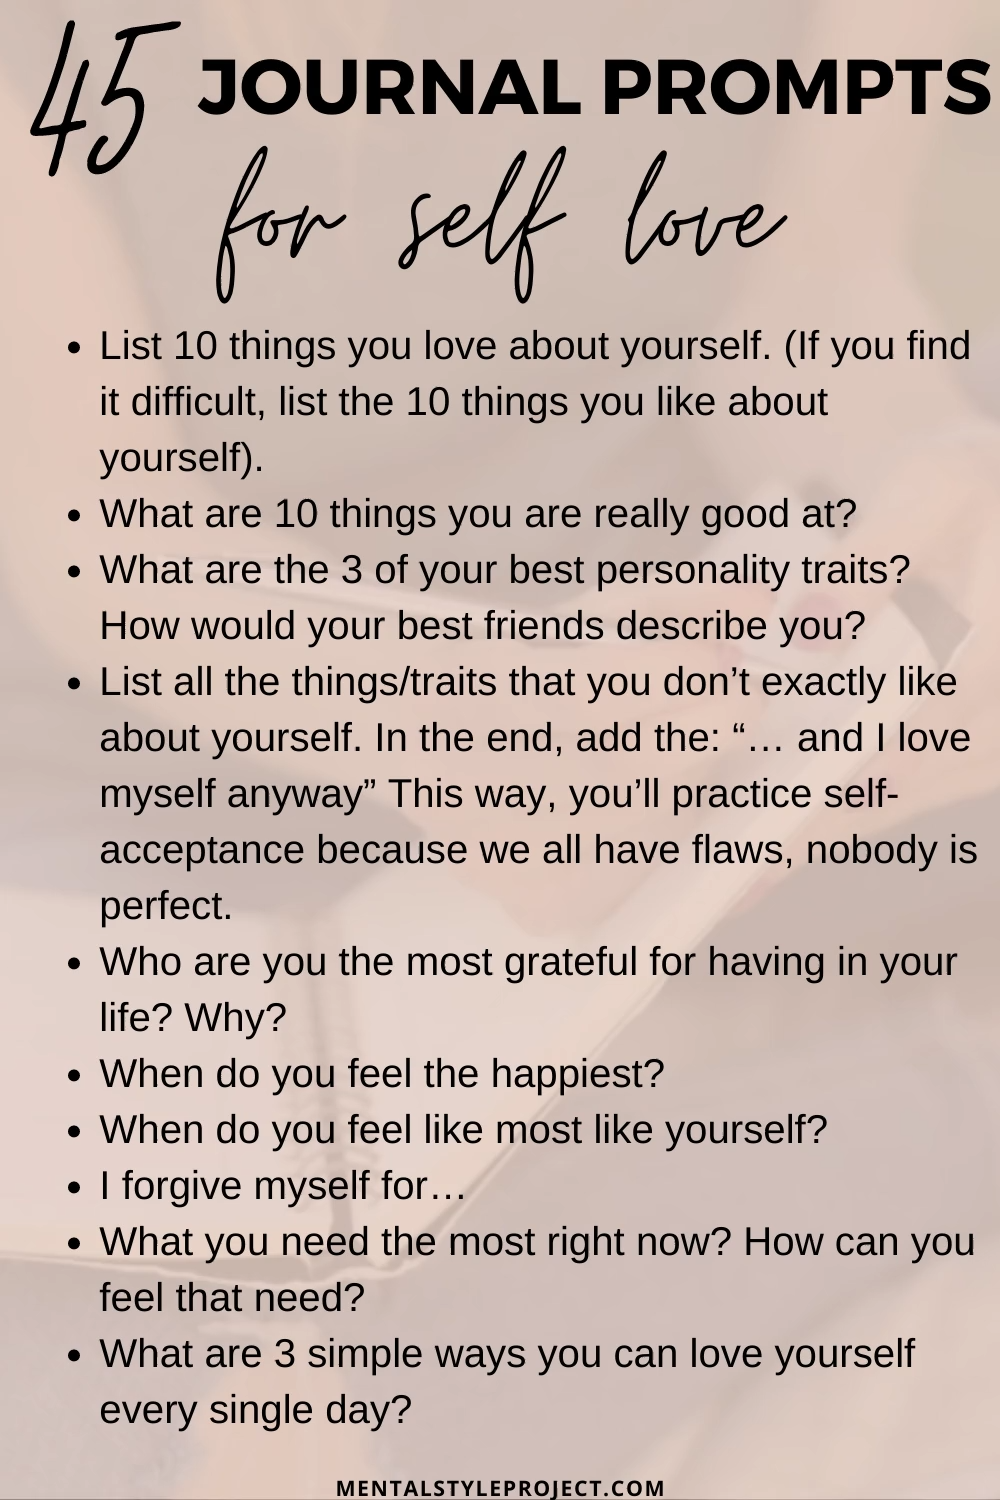 45 Journal Prompts For Self Love